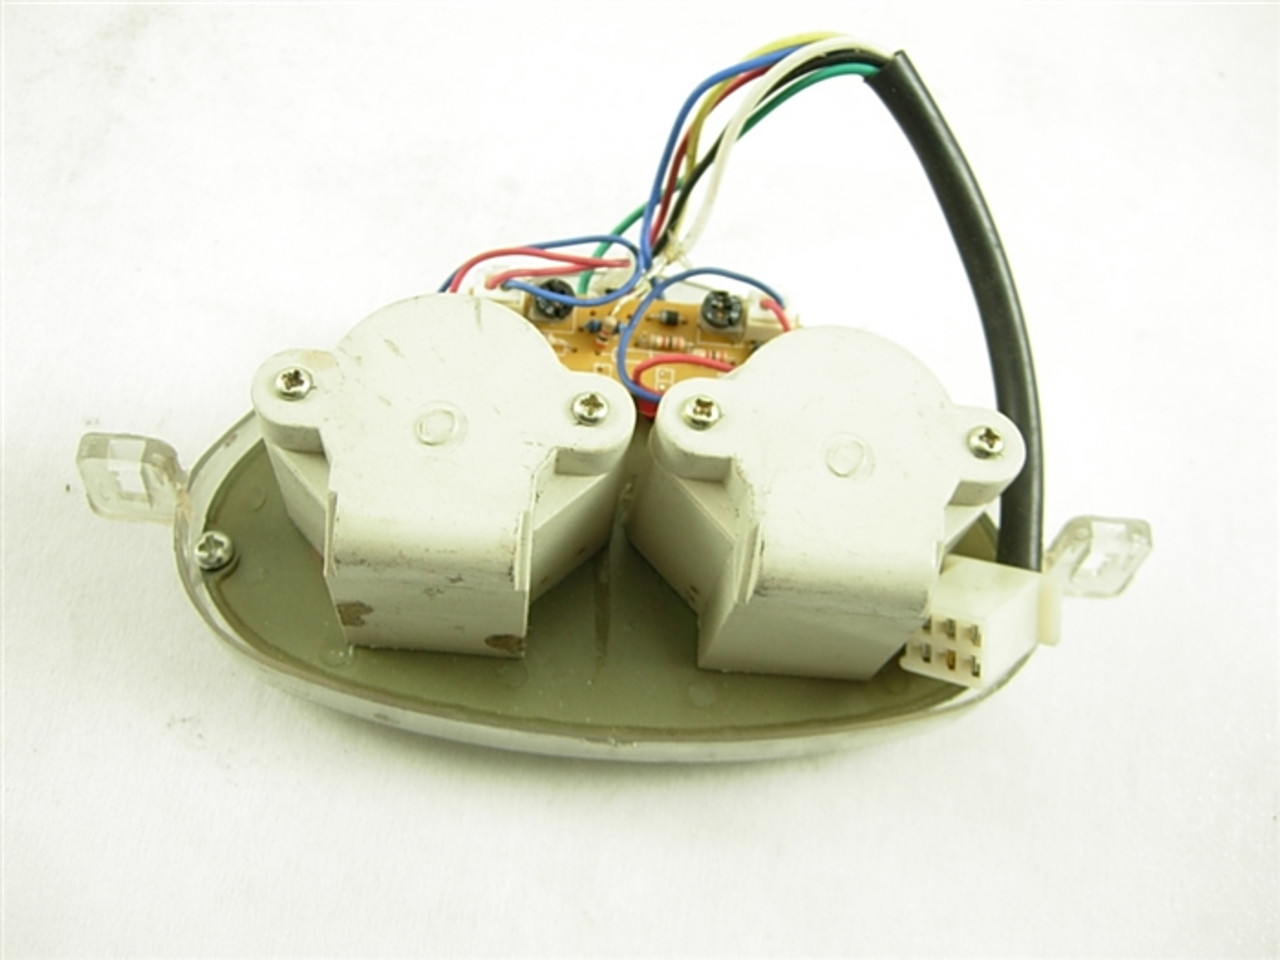 speedometer /cluster 13019-a168-13